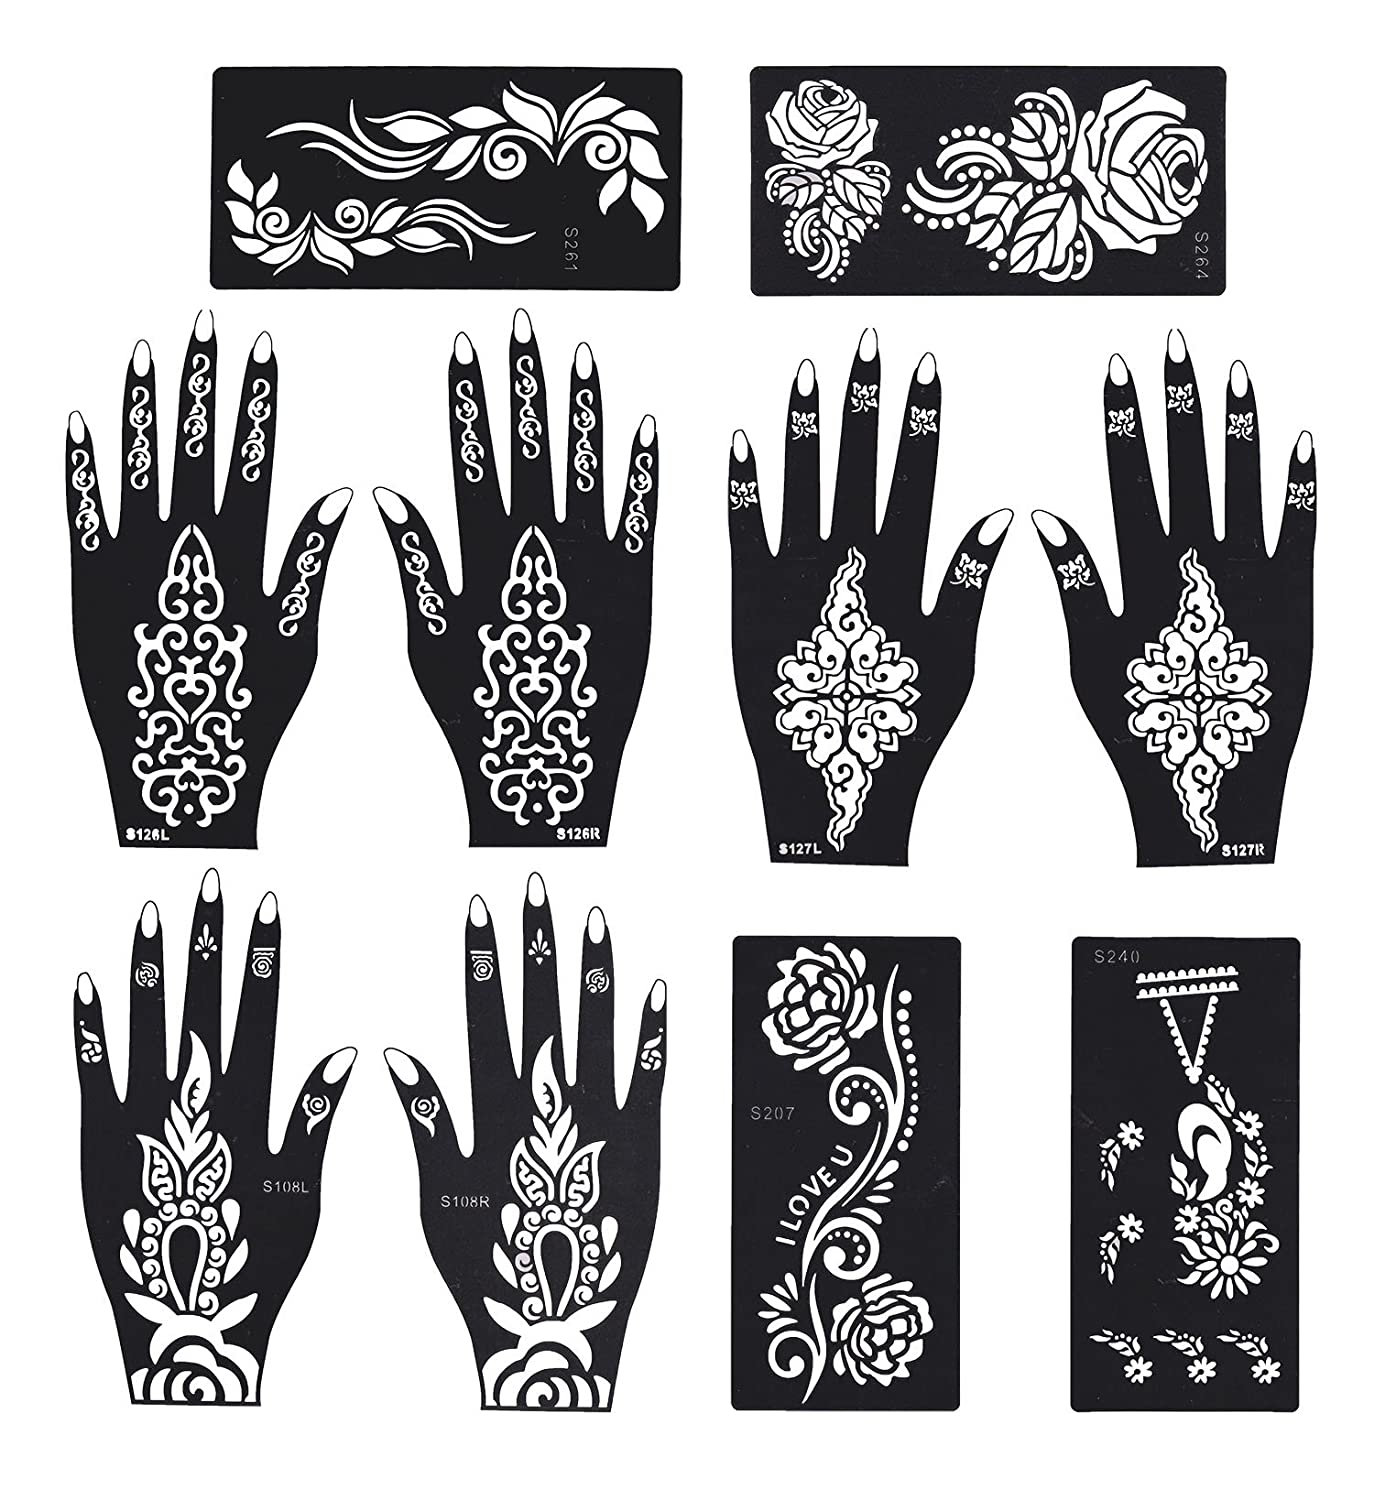 Henna Tattoo Stencil/Temporary Tattoo Temples Set of 8 Sheets, Indian Arabian Tattoo Reusable Stickers Stencils Body Art Designs for Hands Bbei